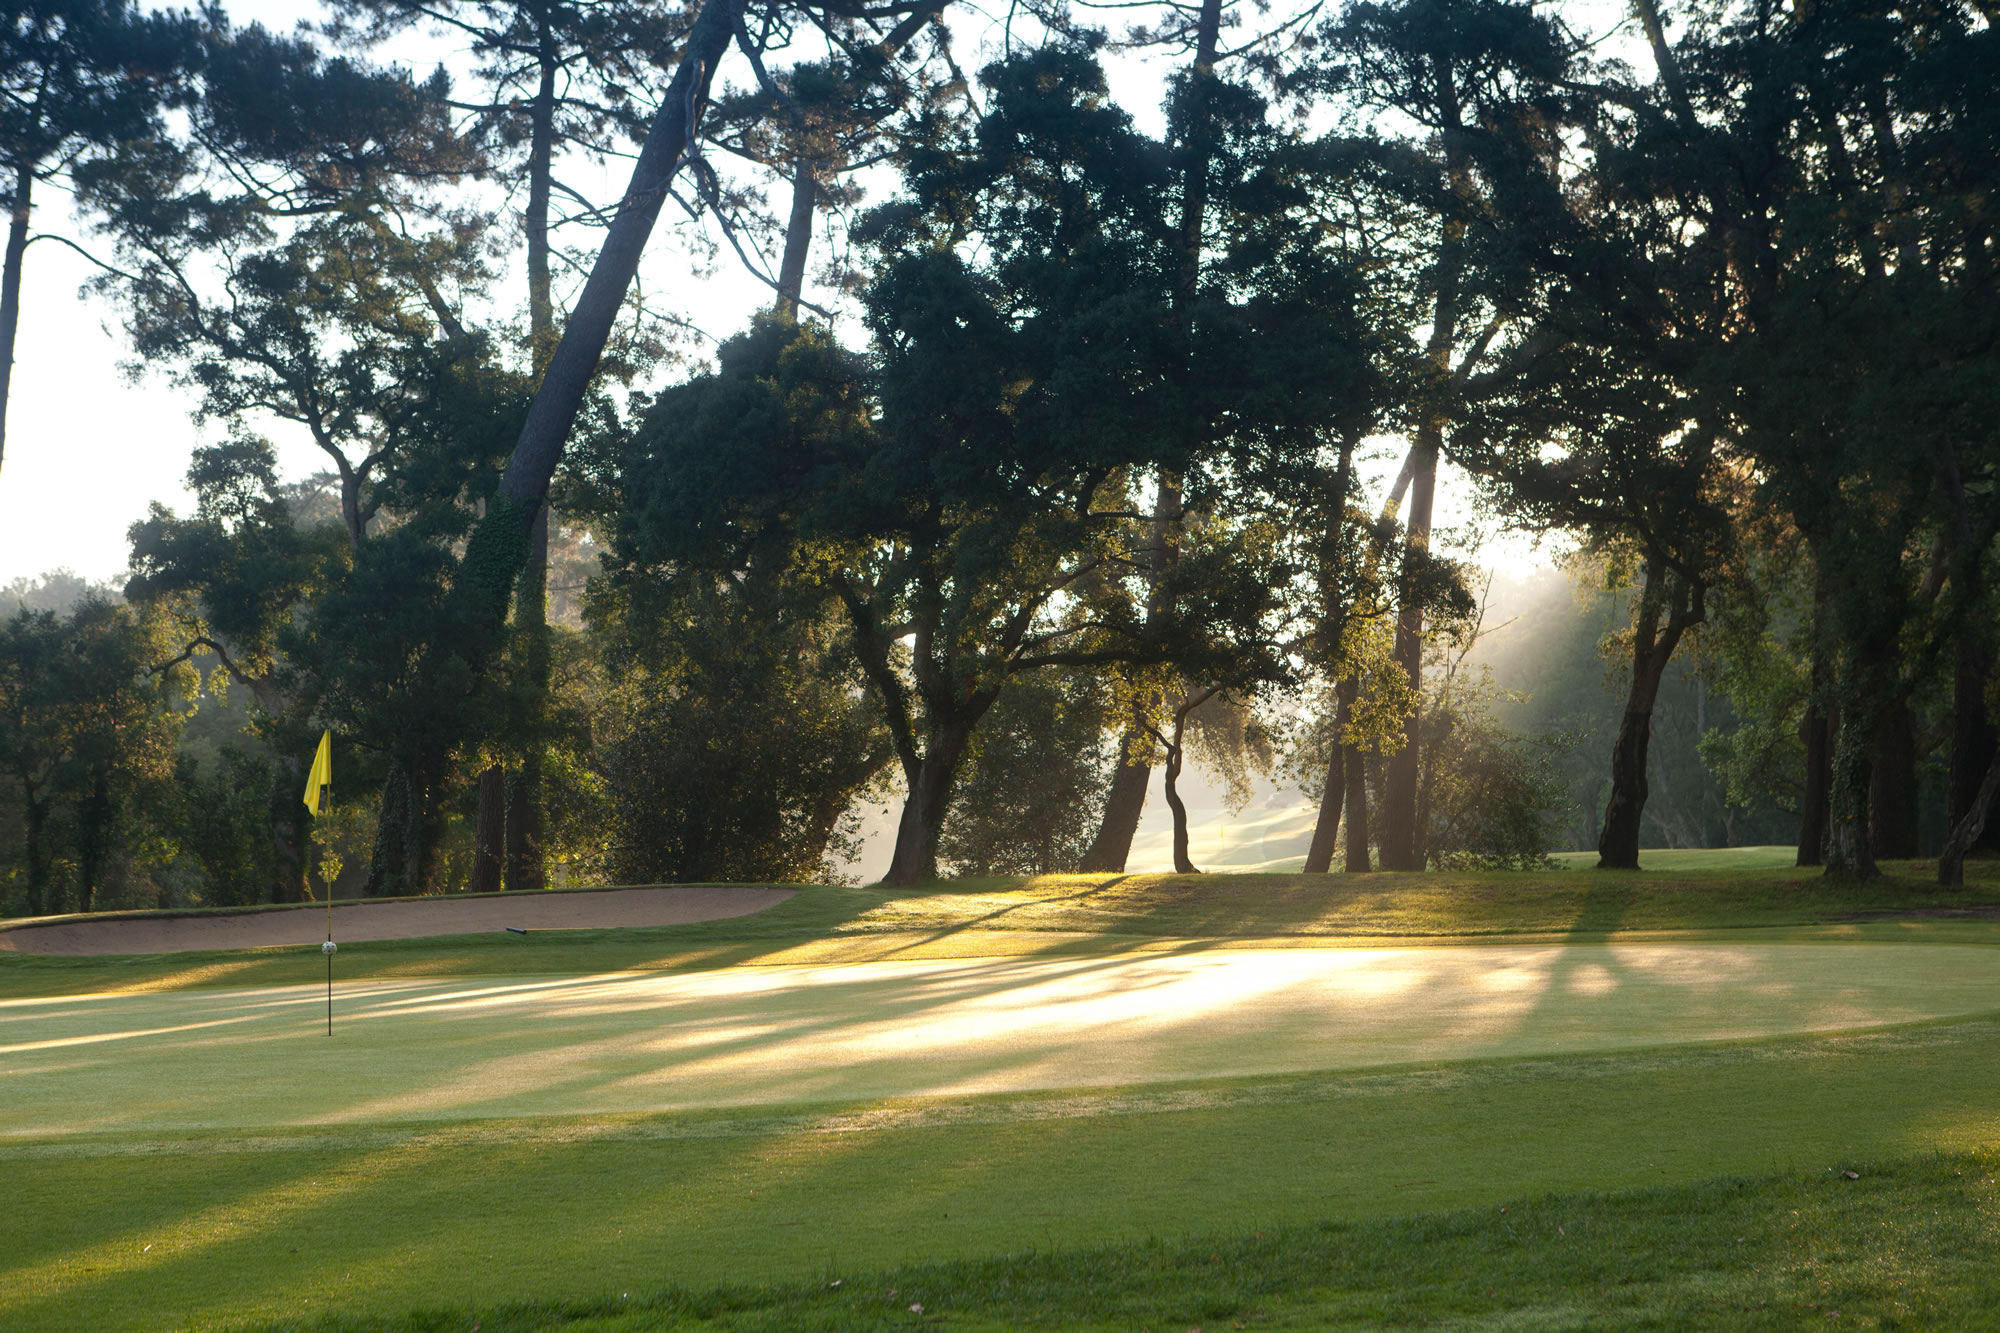 Overview of golf course named Golf Club d'Hossegor